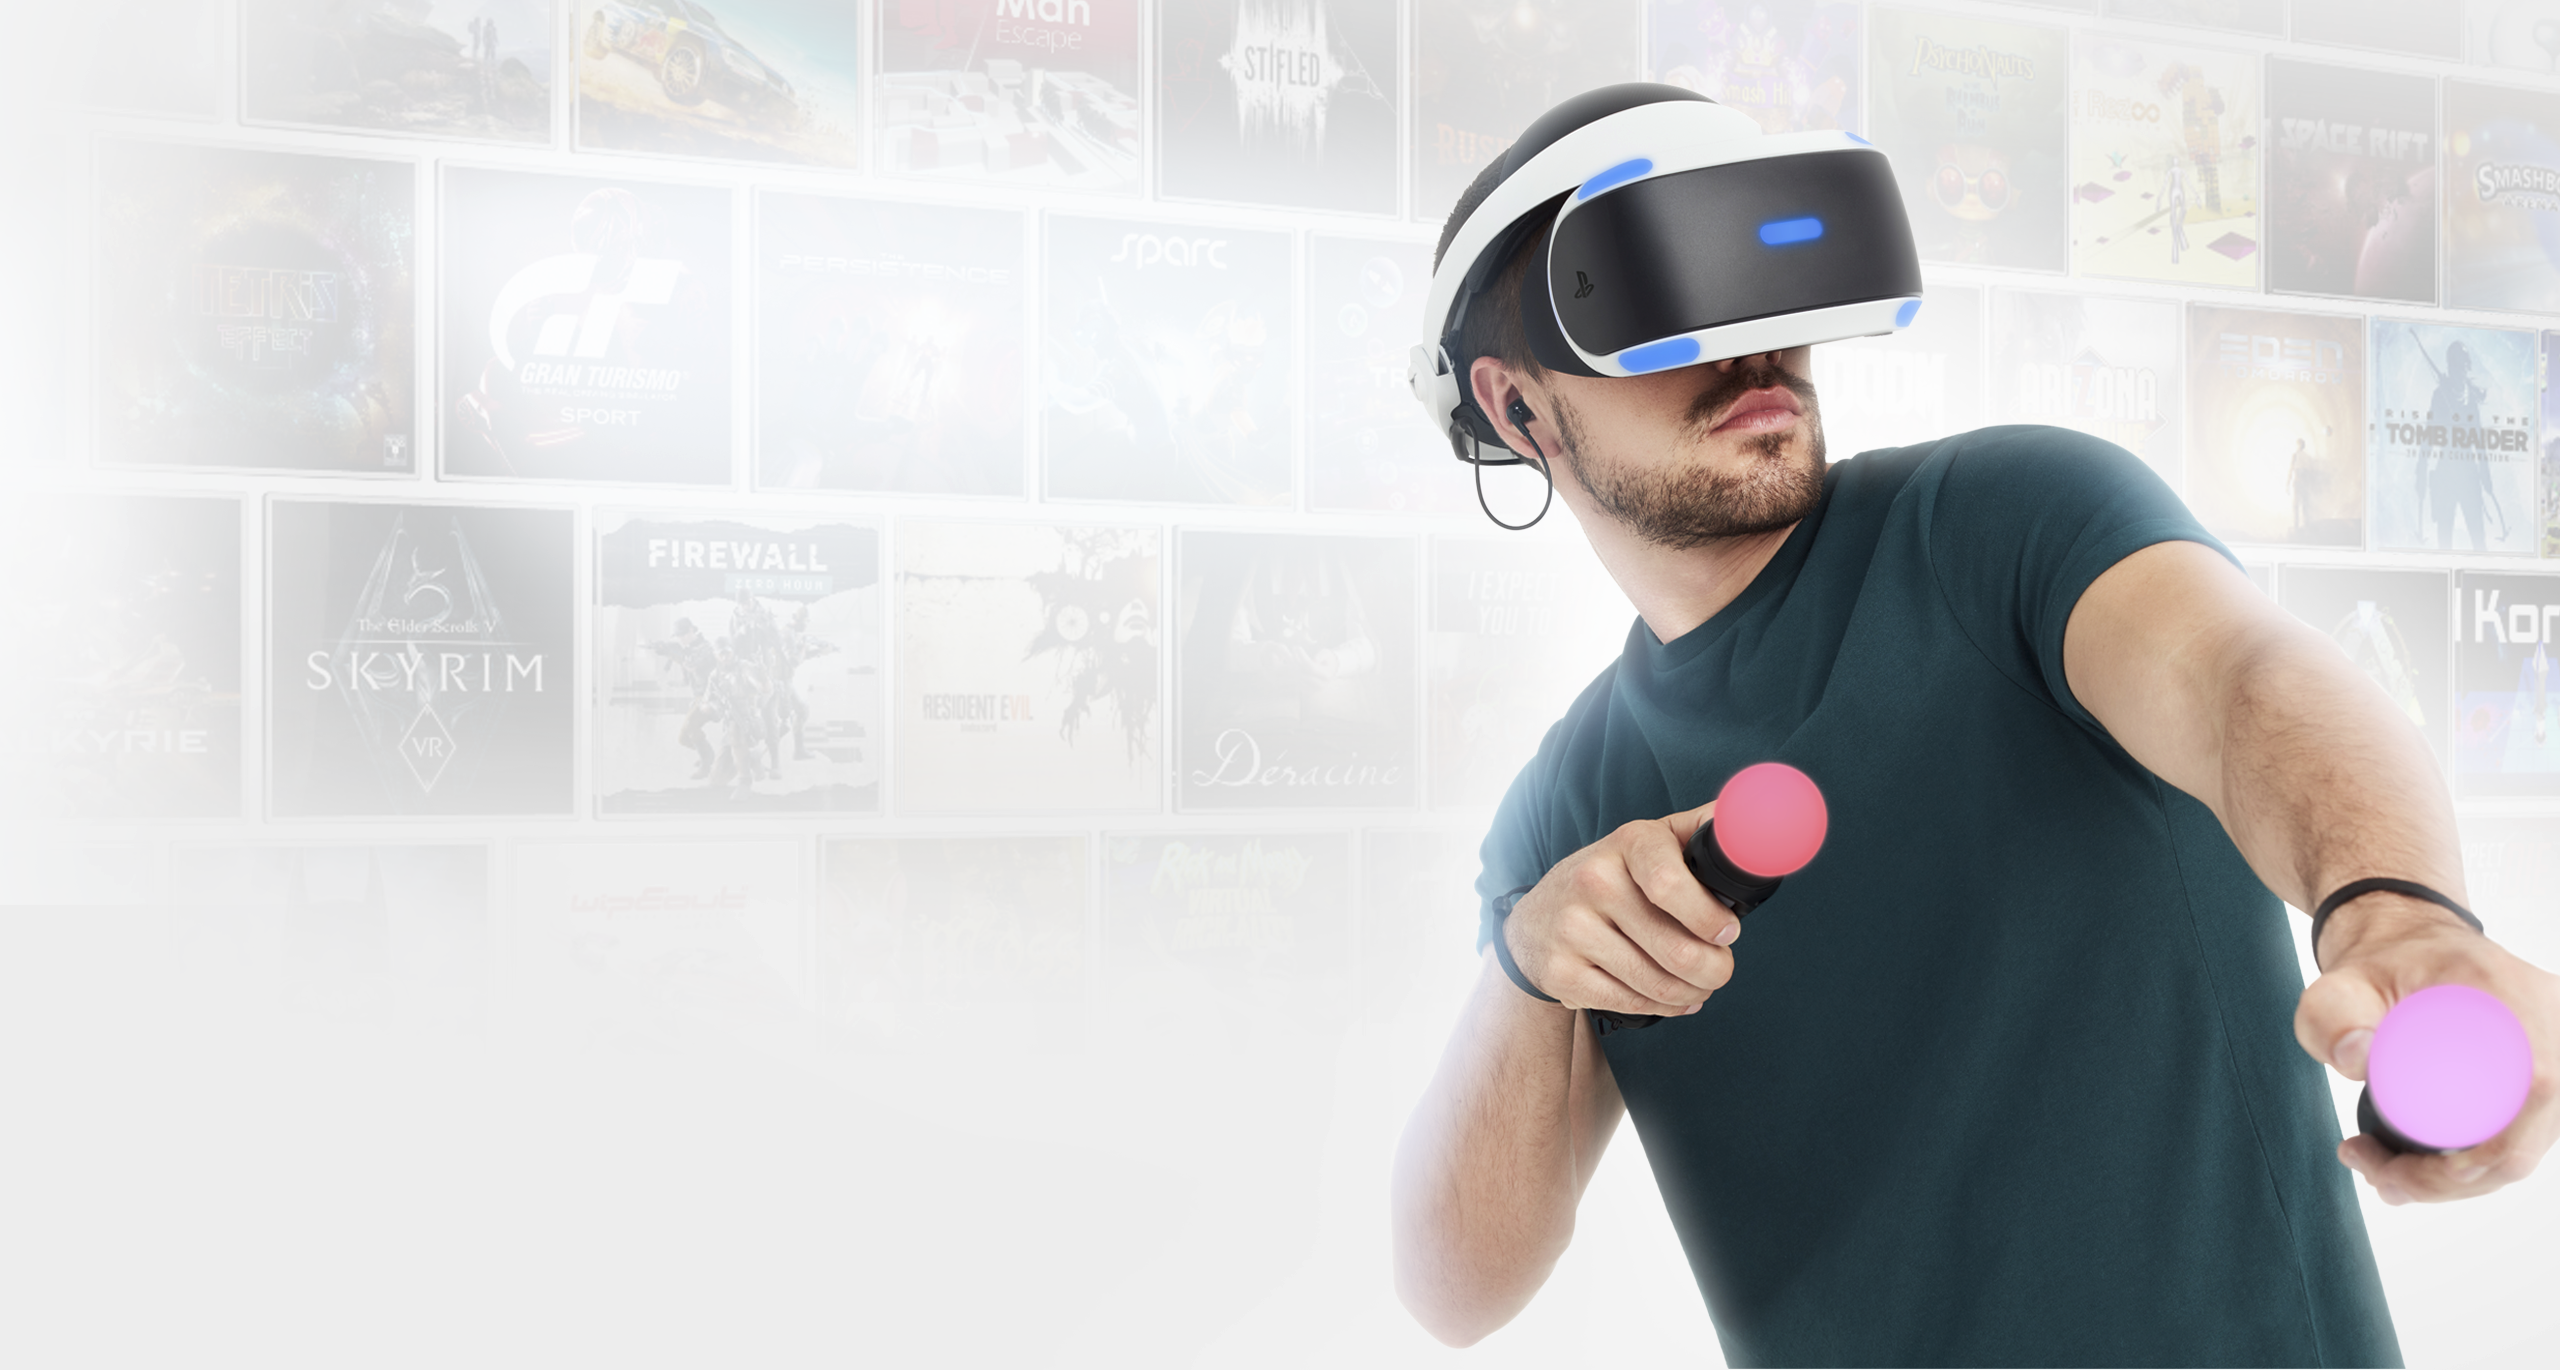 PlayStation VR promotional artwork